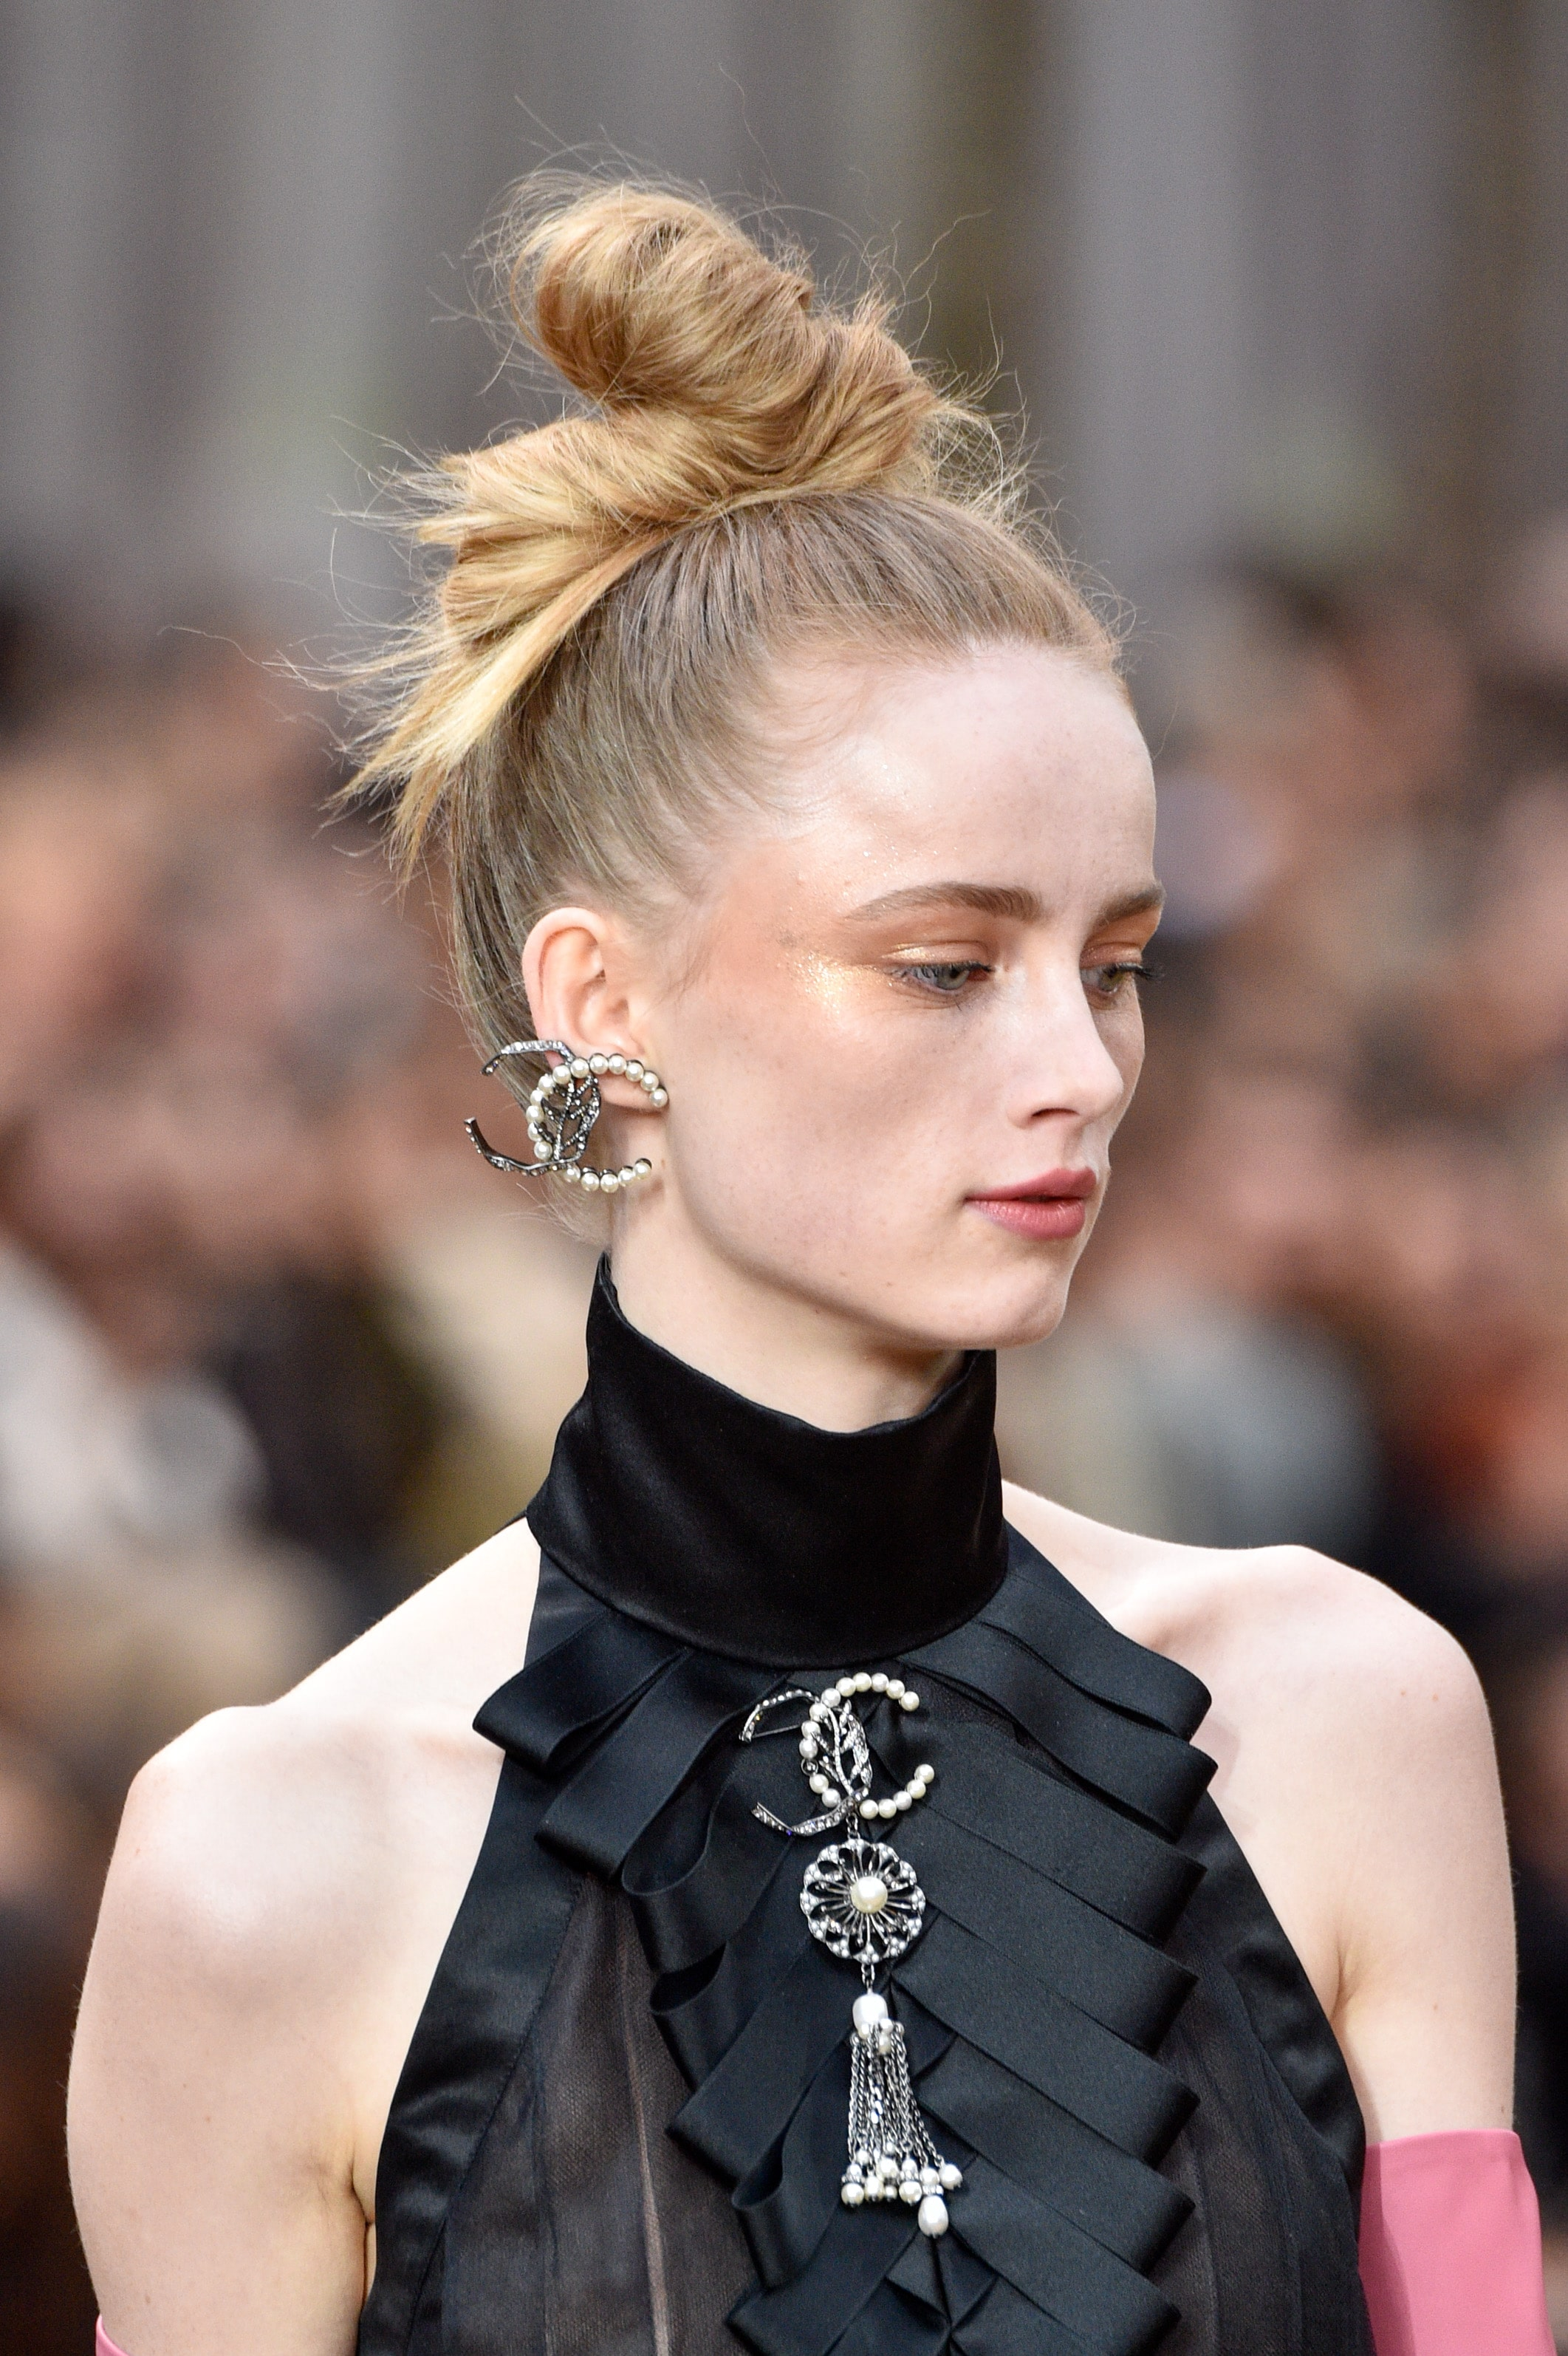 90's inspired logo earrings at Chanel. Image: Courtesy Peter White/Getty Images